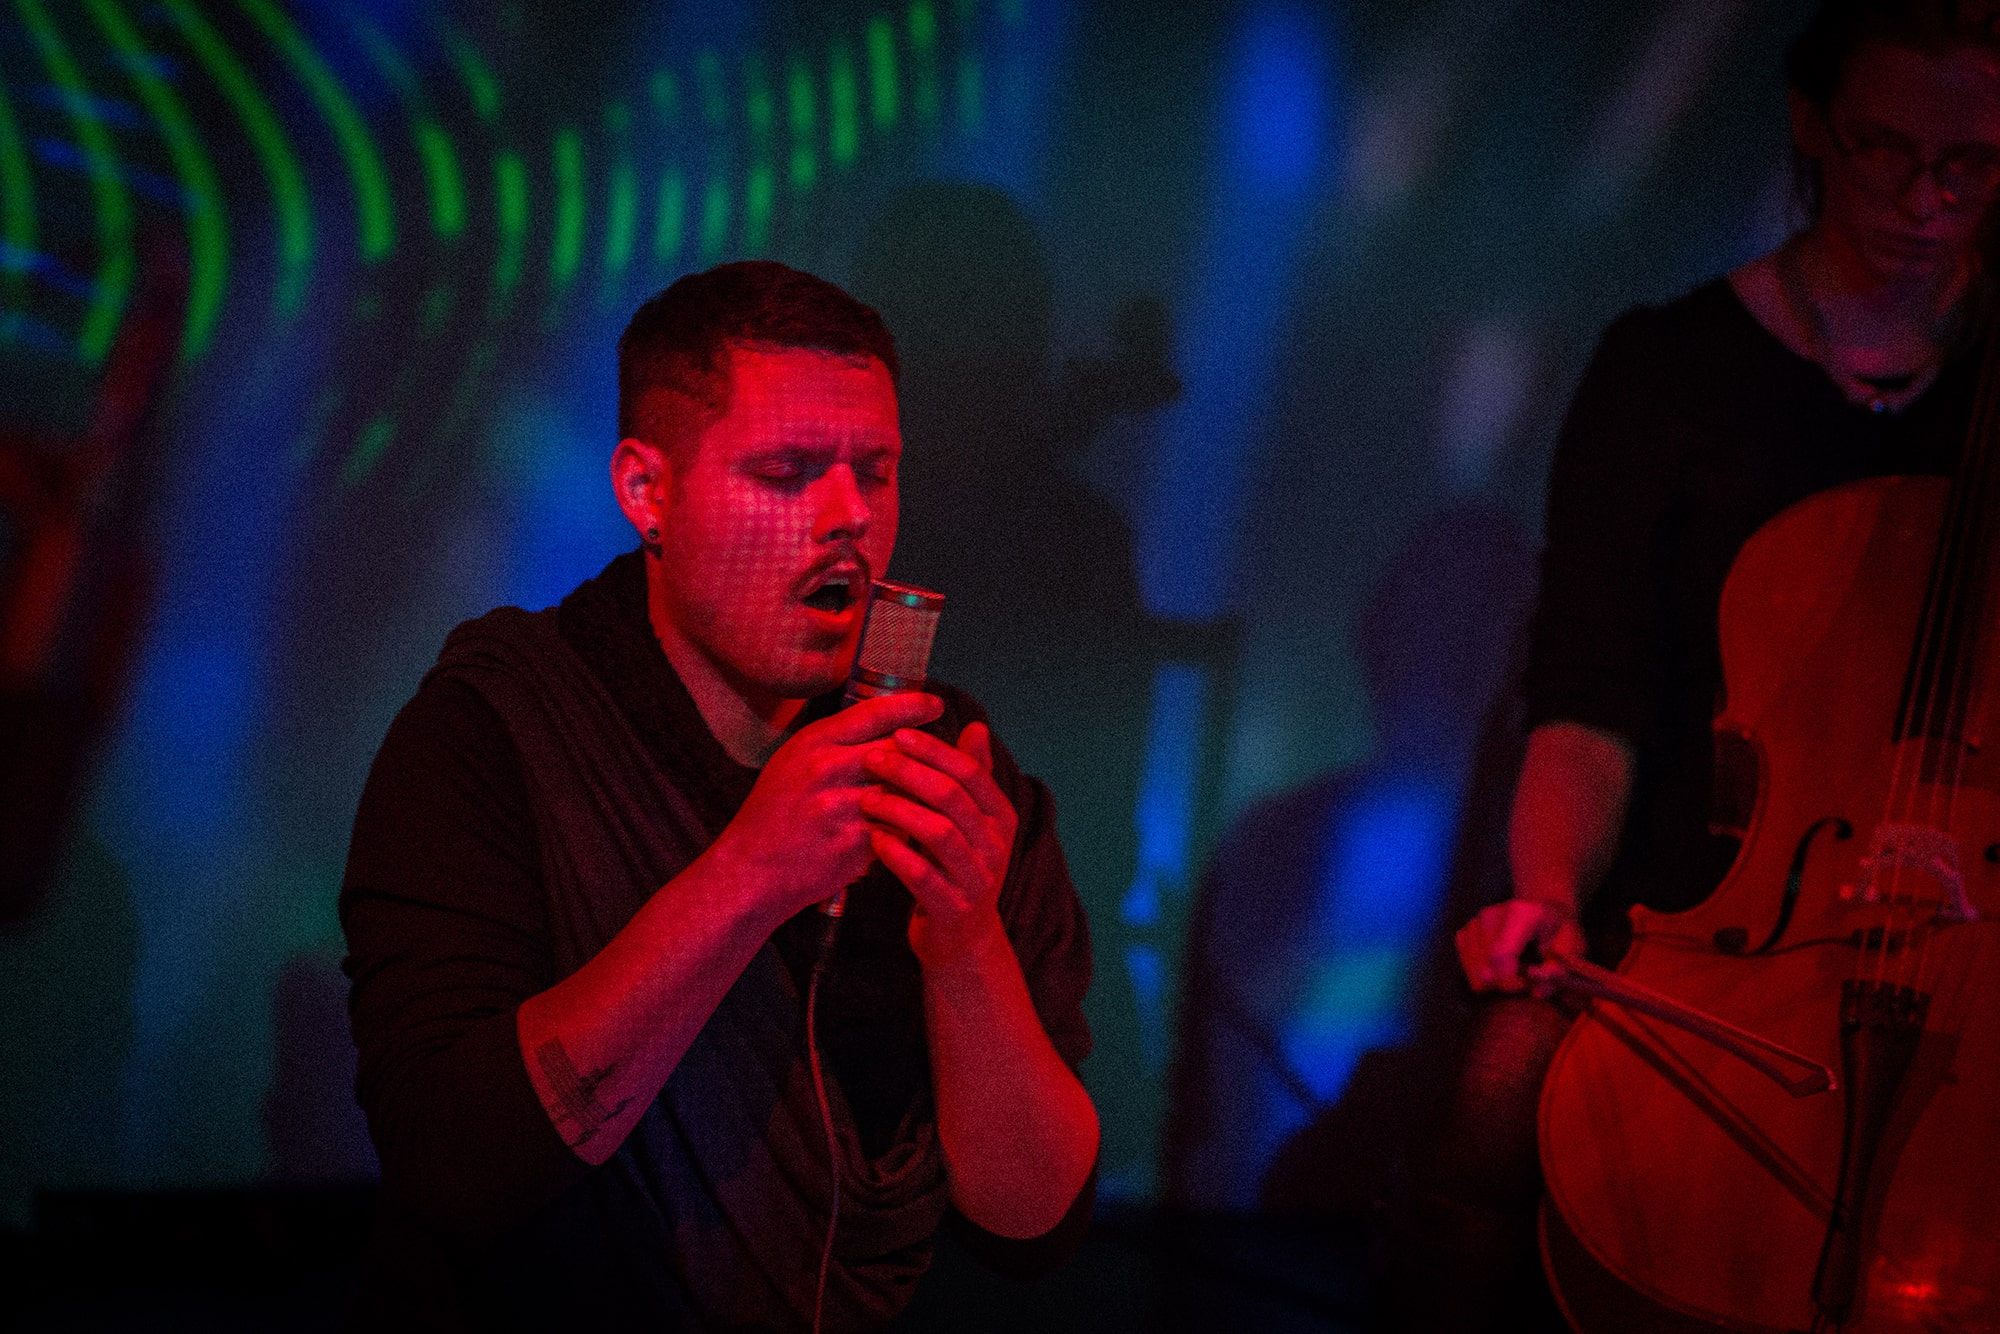 Randy Gibson performing <em>Apparitons Of The Four Pillars in The Midwinter Starfield under The Astral 789 Duet</em> live at the 2014 Avant Music Festival